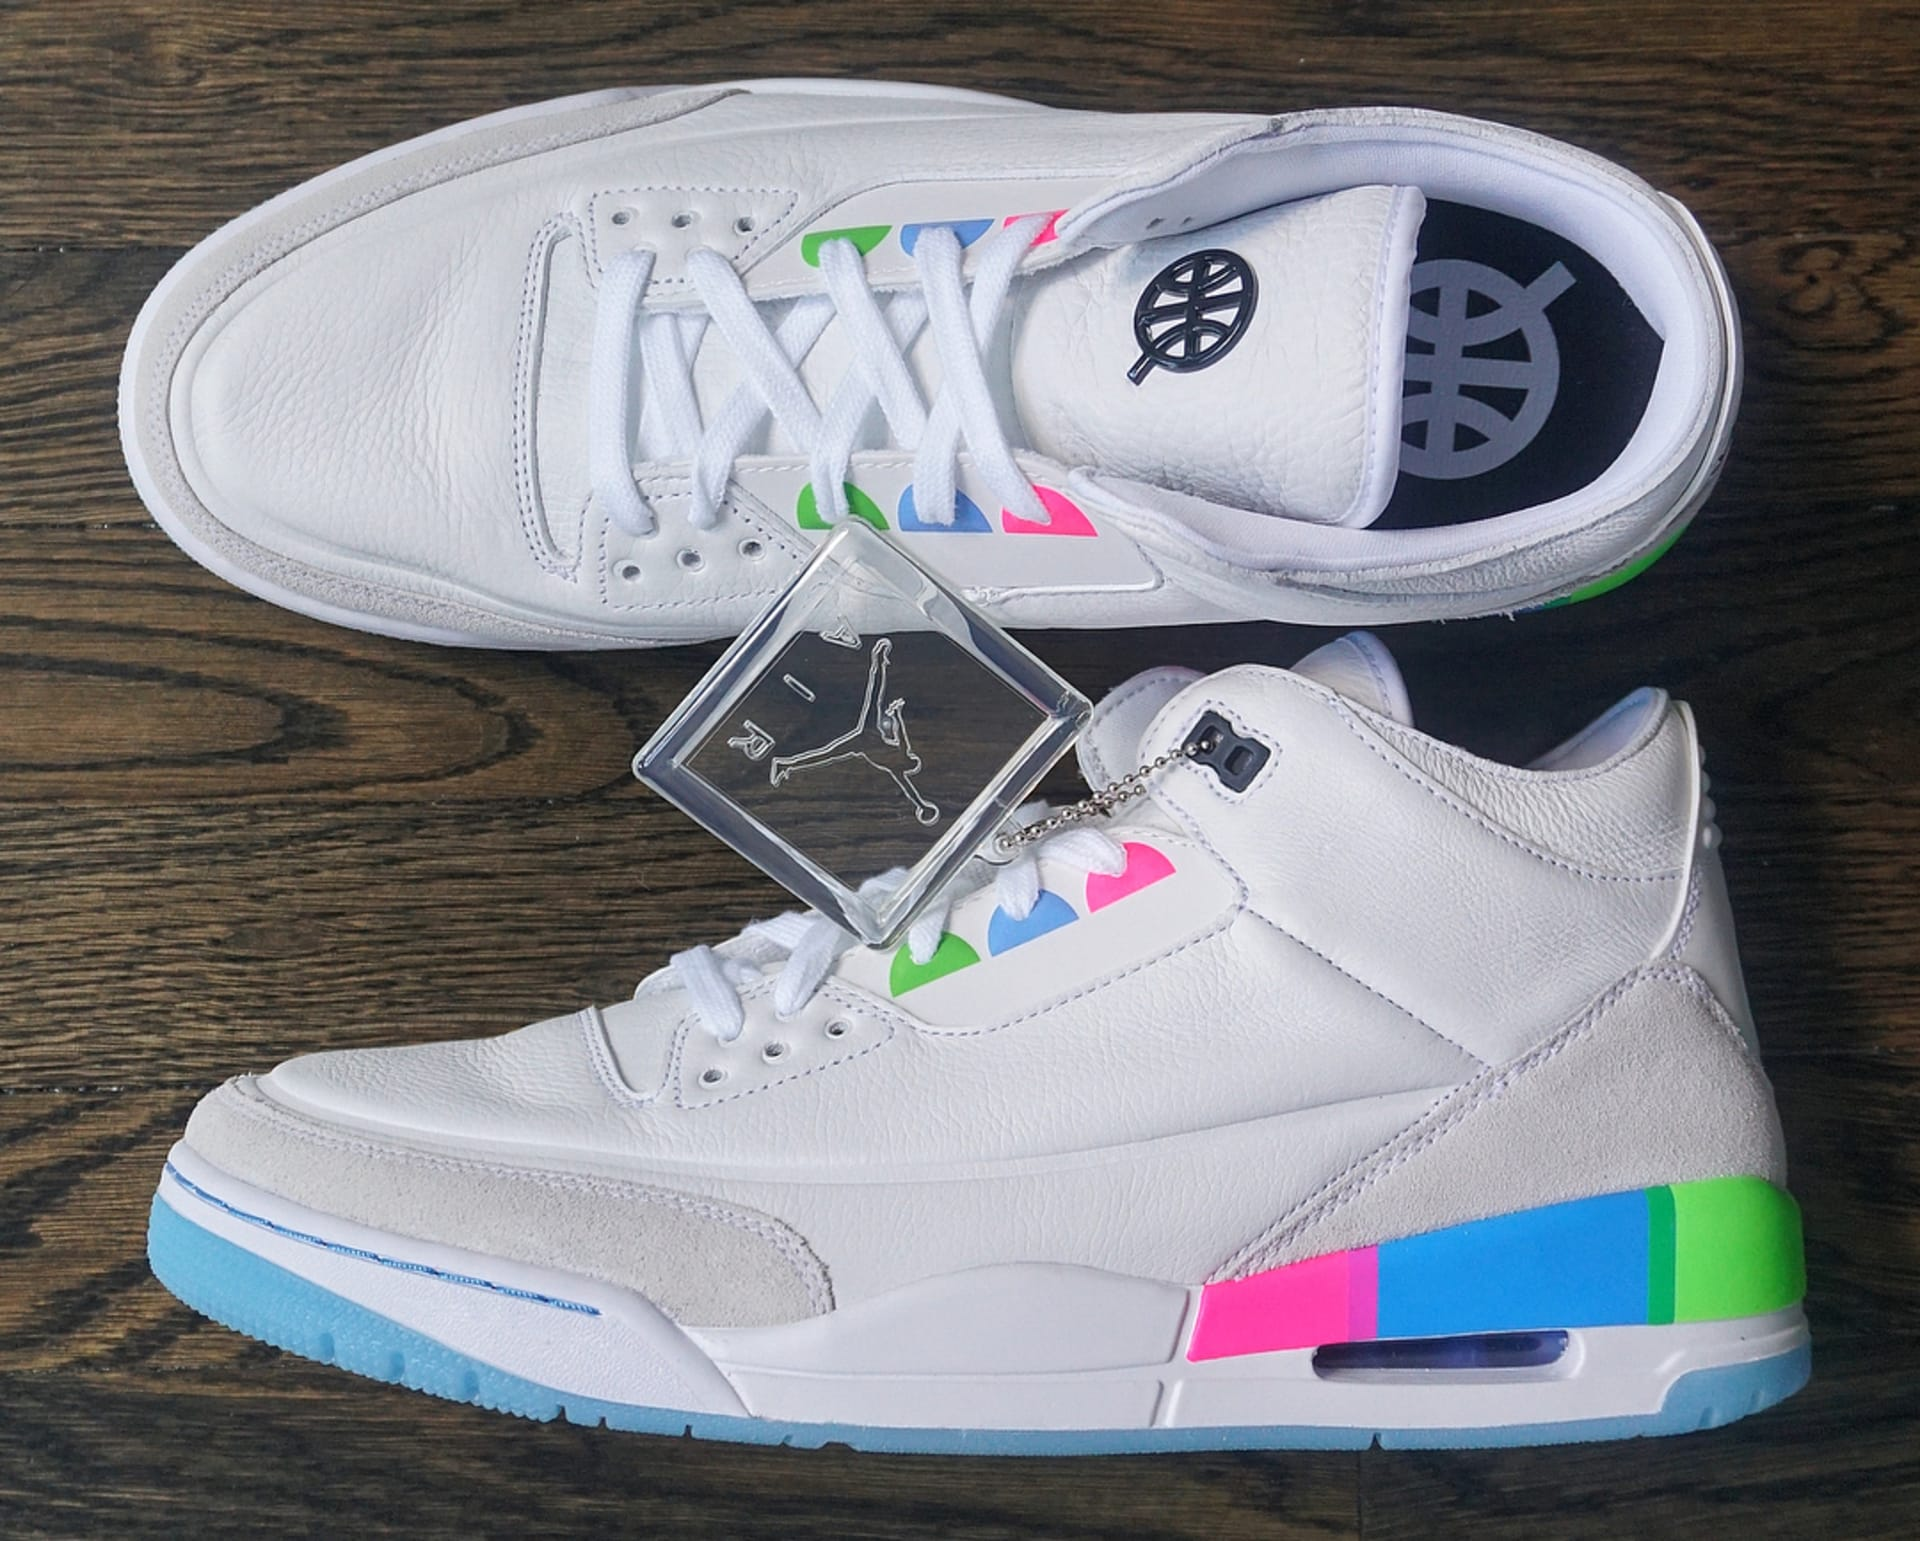 c8887abee96eb0 Air Jordan III Retro Quai54 2018 (Friends and Family)